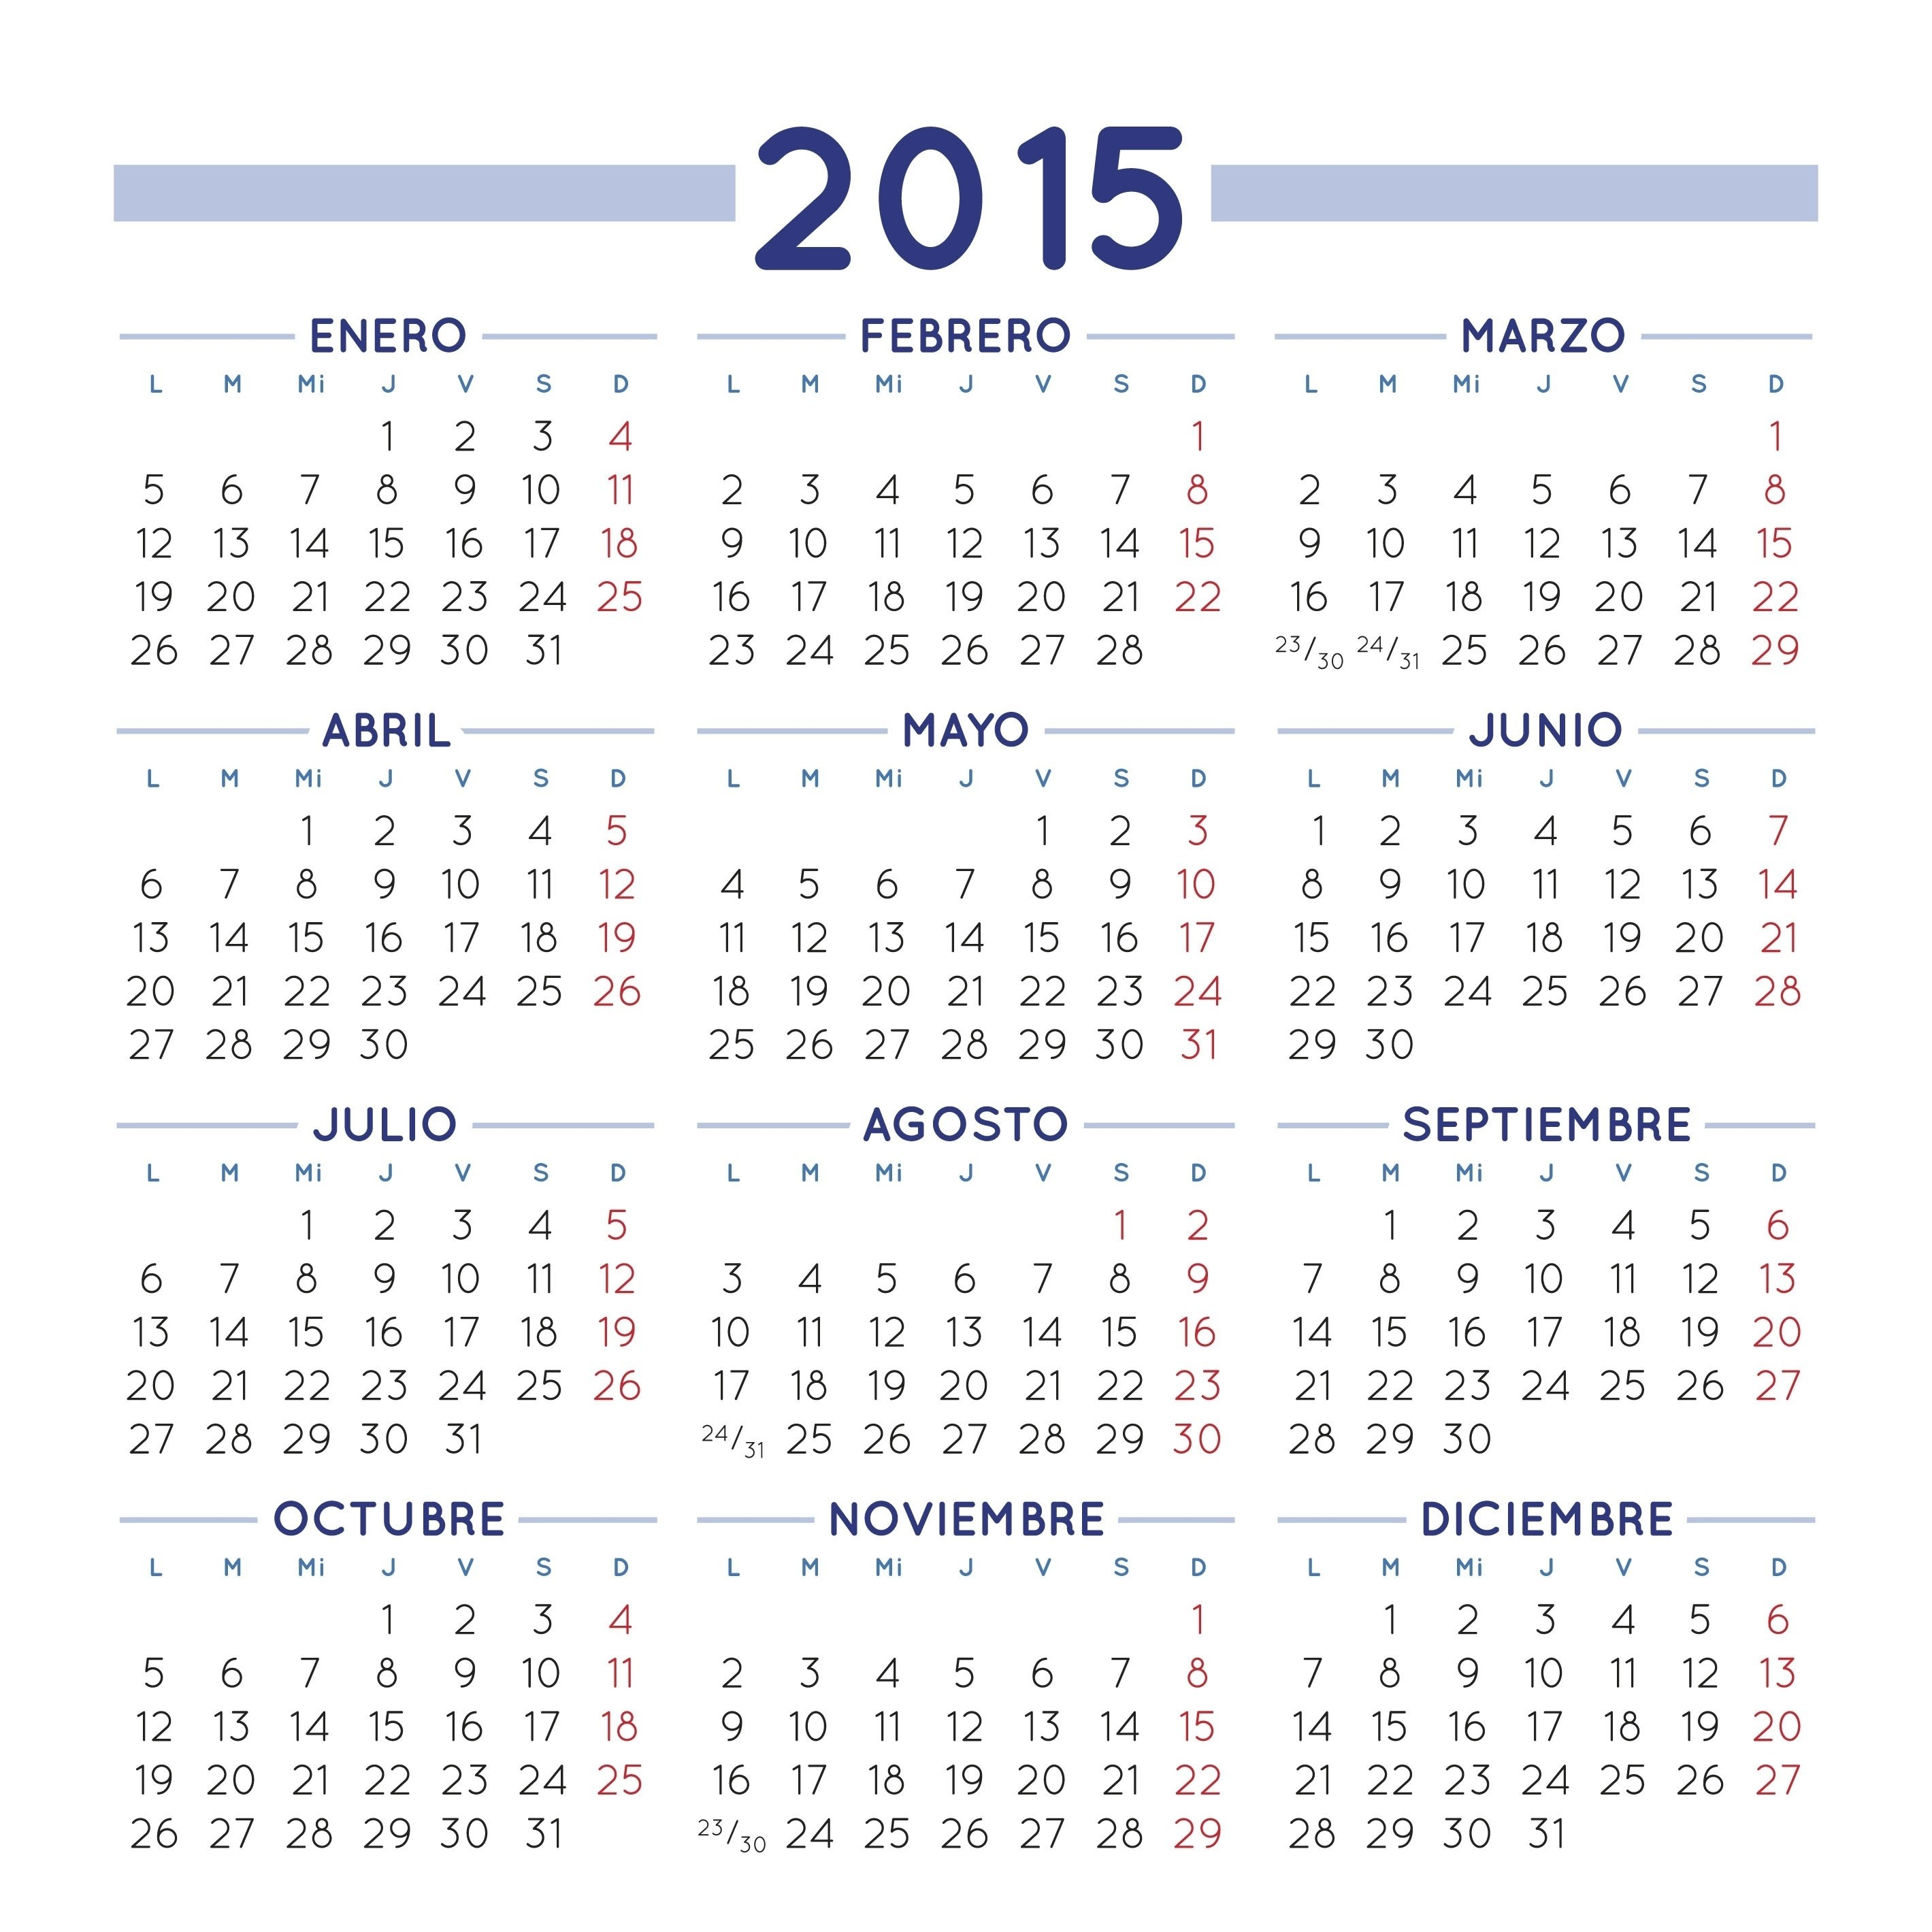 Calendario Febrero 2019 Con Santoral Más Actual Blank Calendar Template 2006 Of Calendario Febrero 2019 Con Santoral Más Populares Clp 2018 2019 Pages 101 150 Text Version